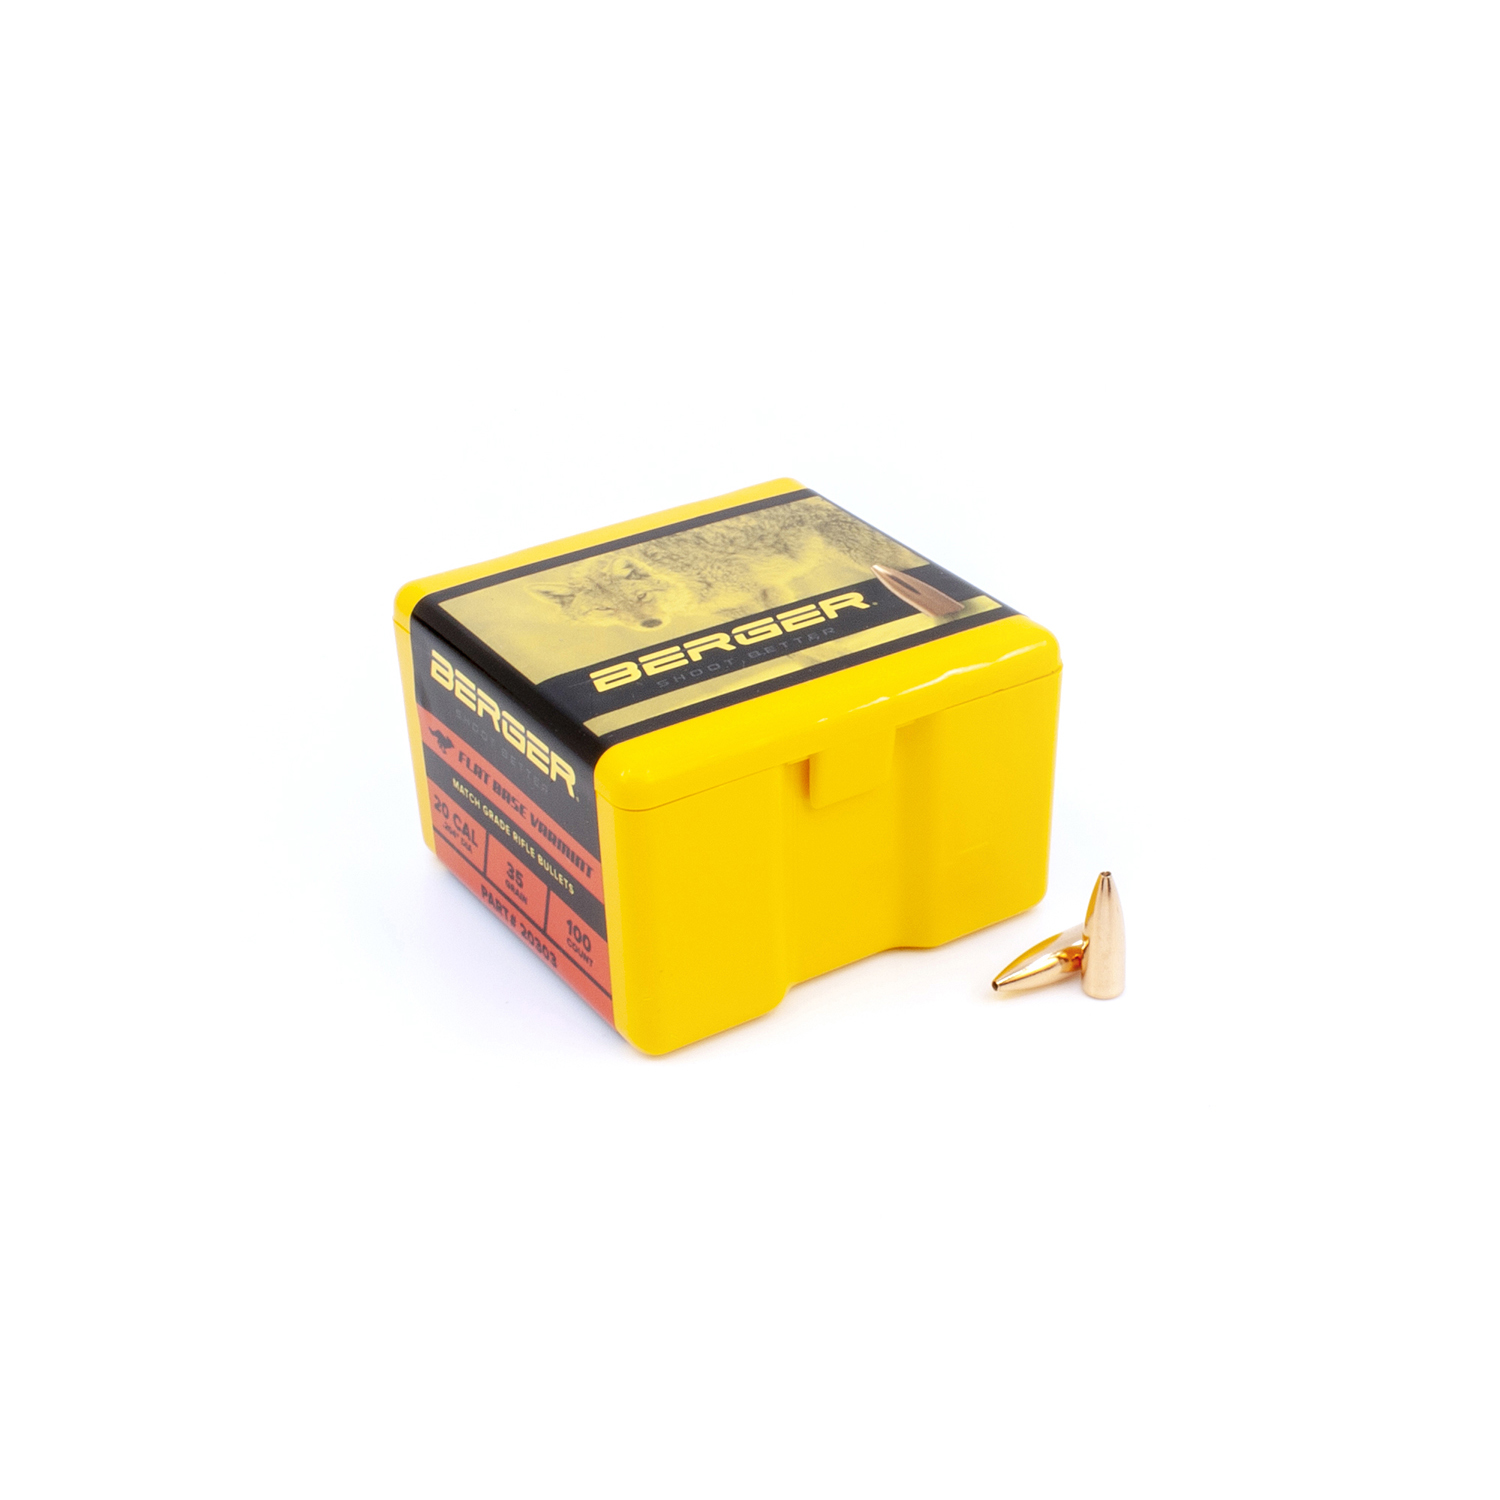 Berger Bullets - .20 cal, 35 gr. Varmint Flat Base - Box of 100